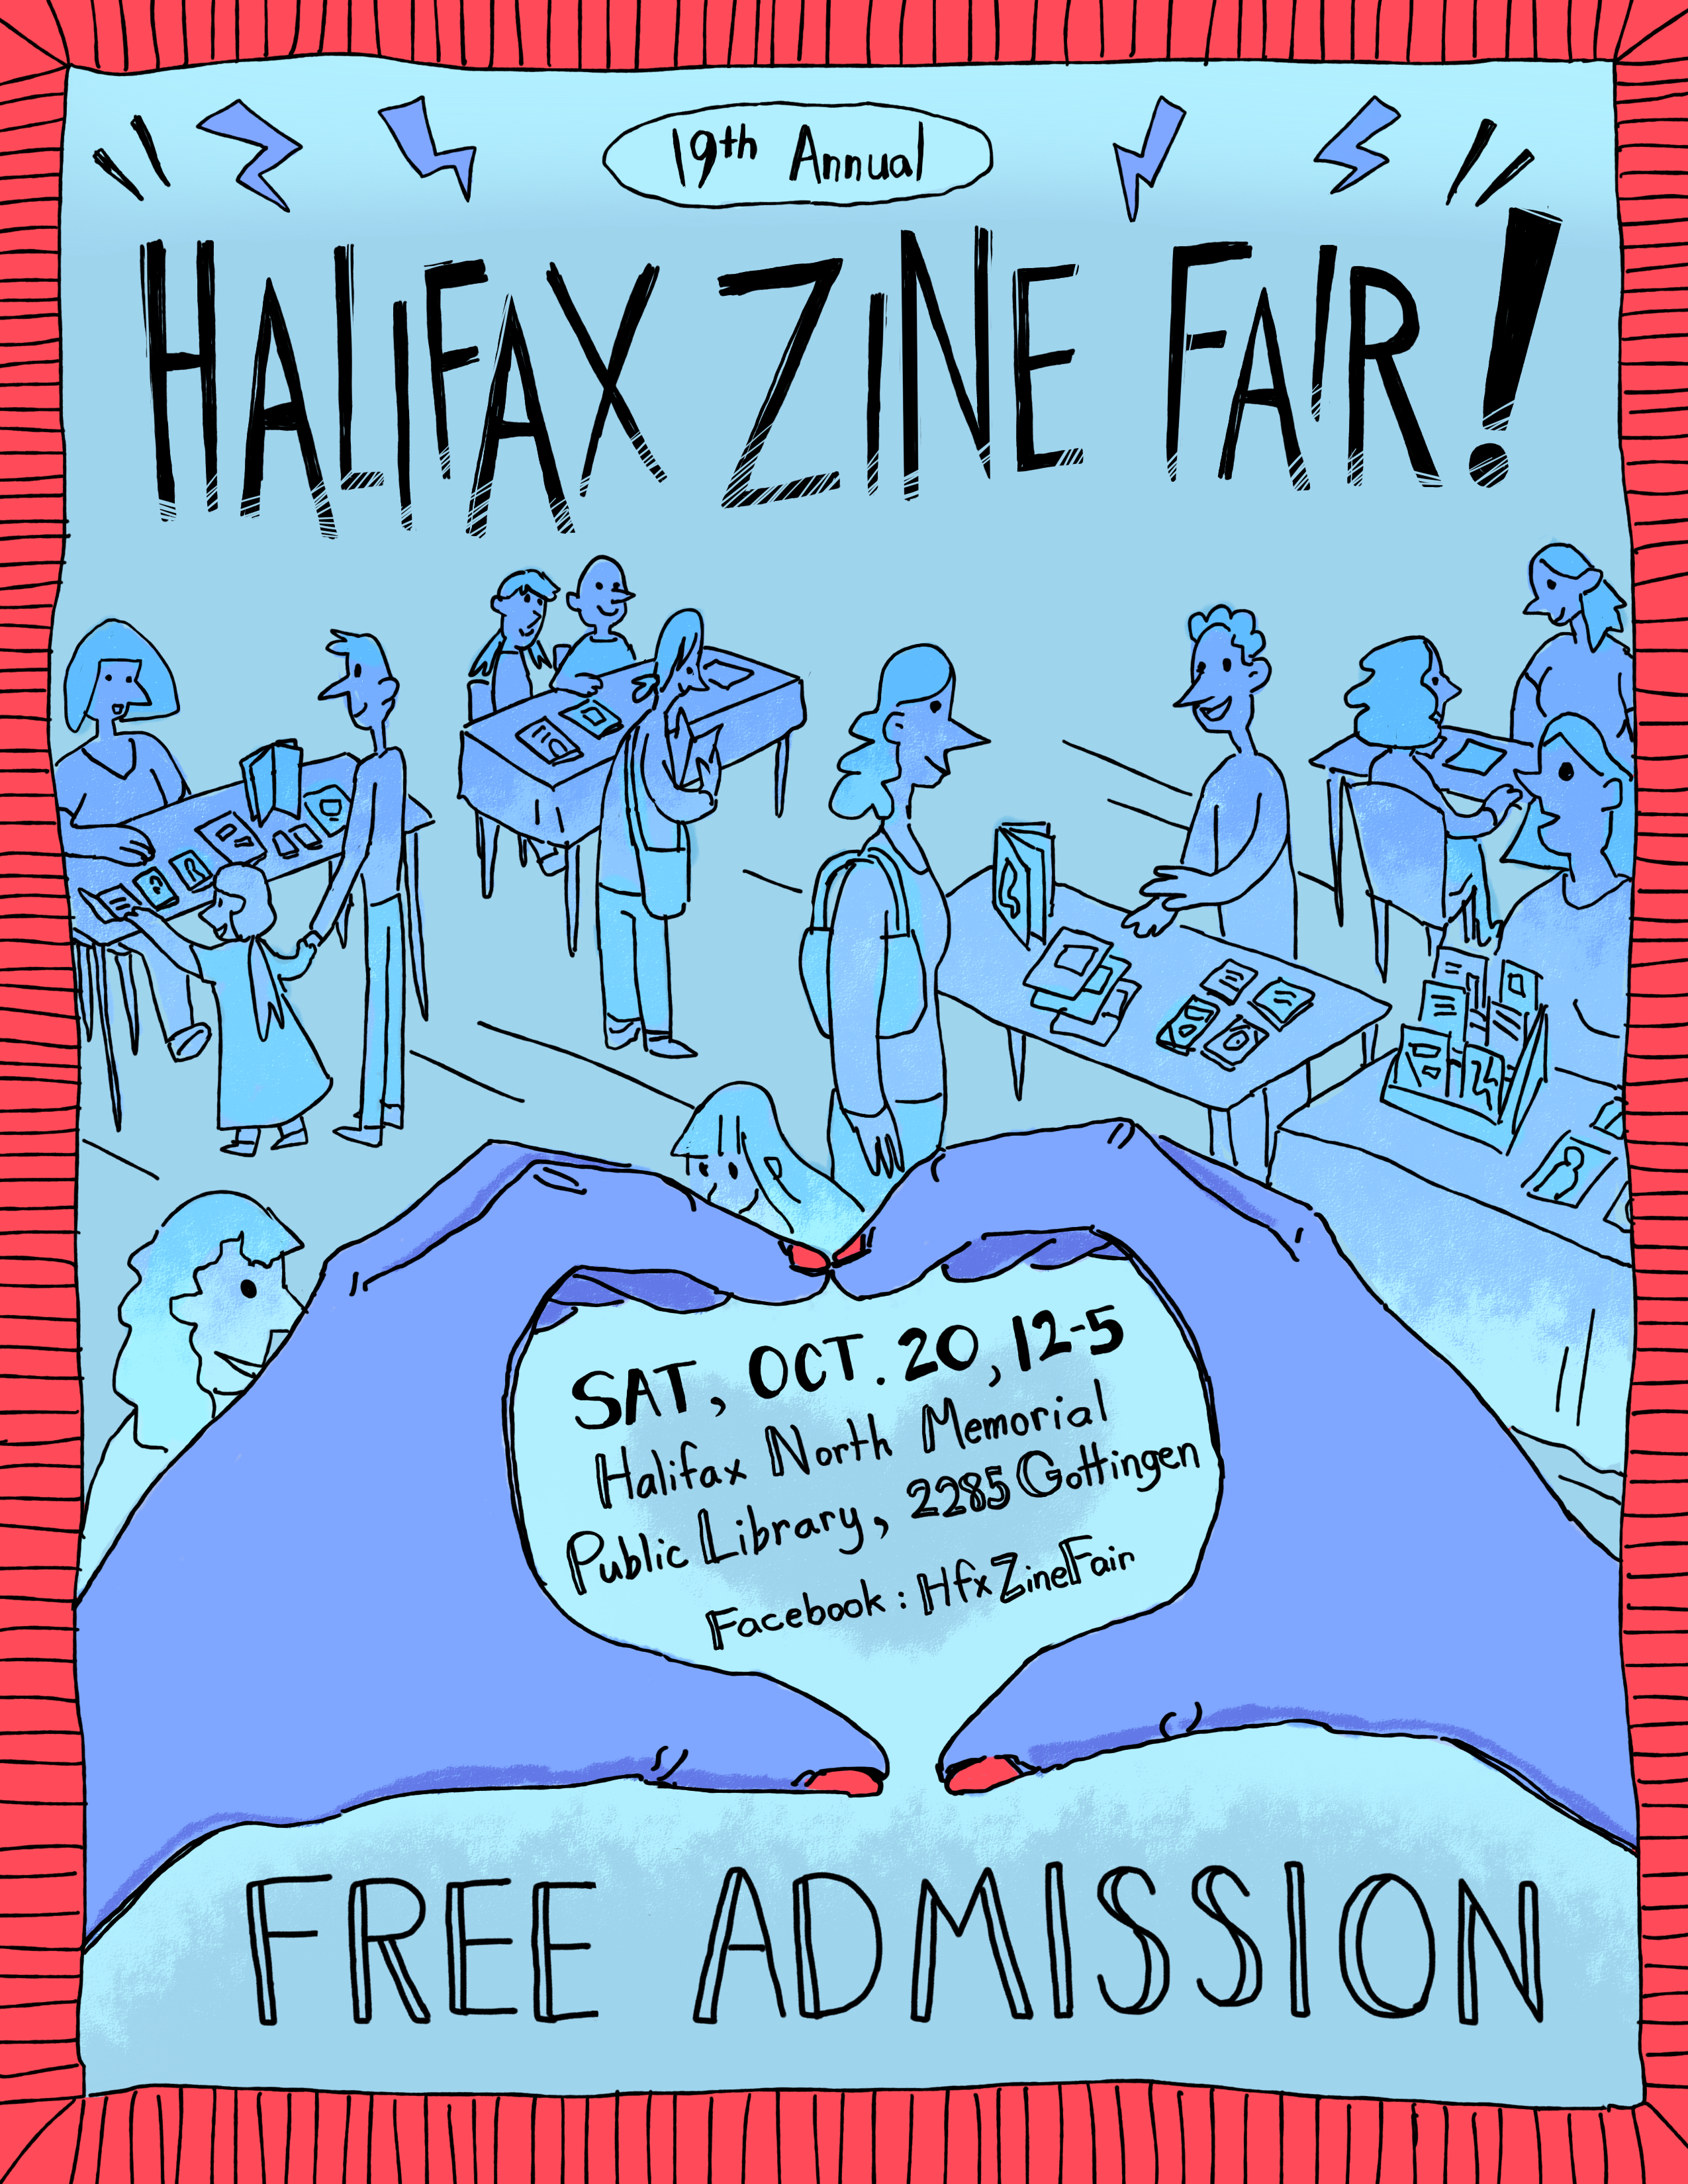 Poster for the Halifax Zine Fair